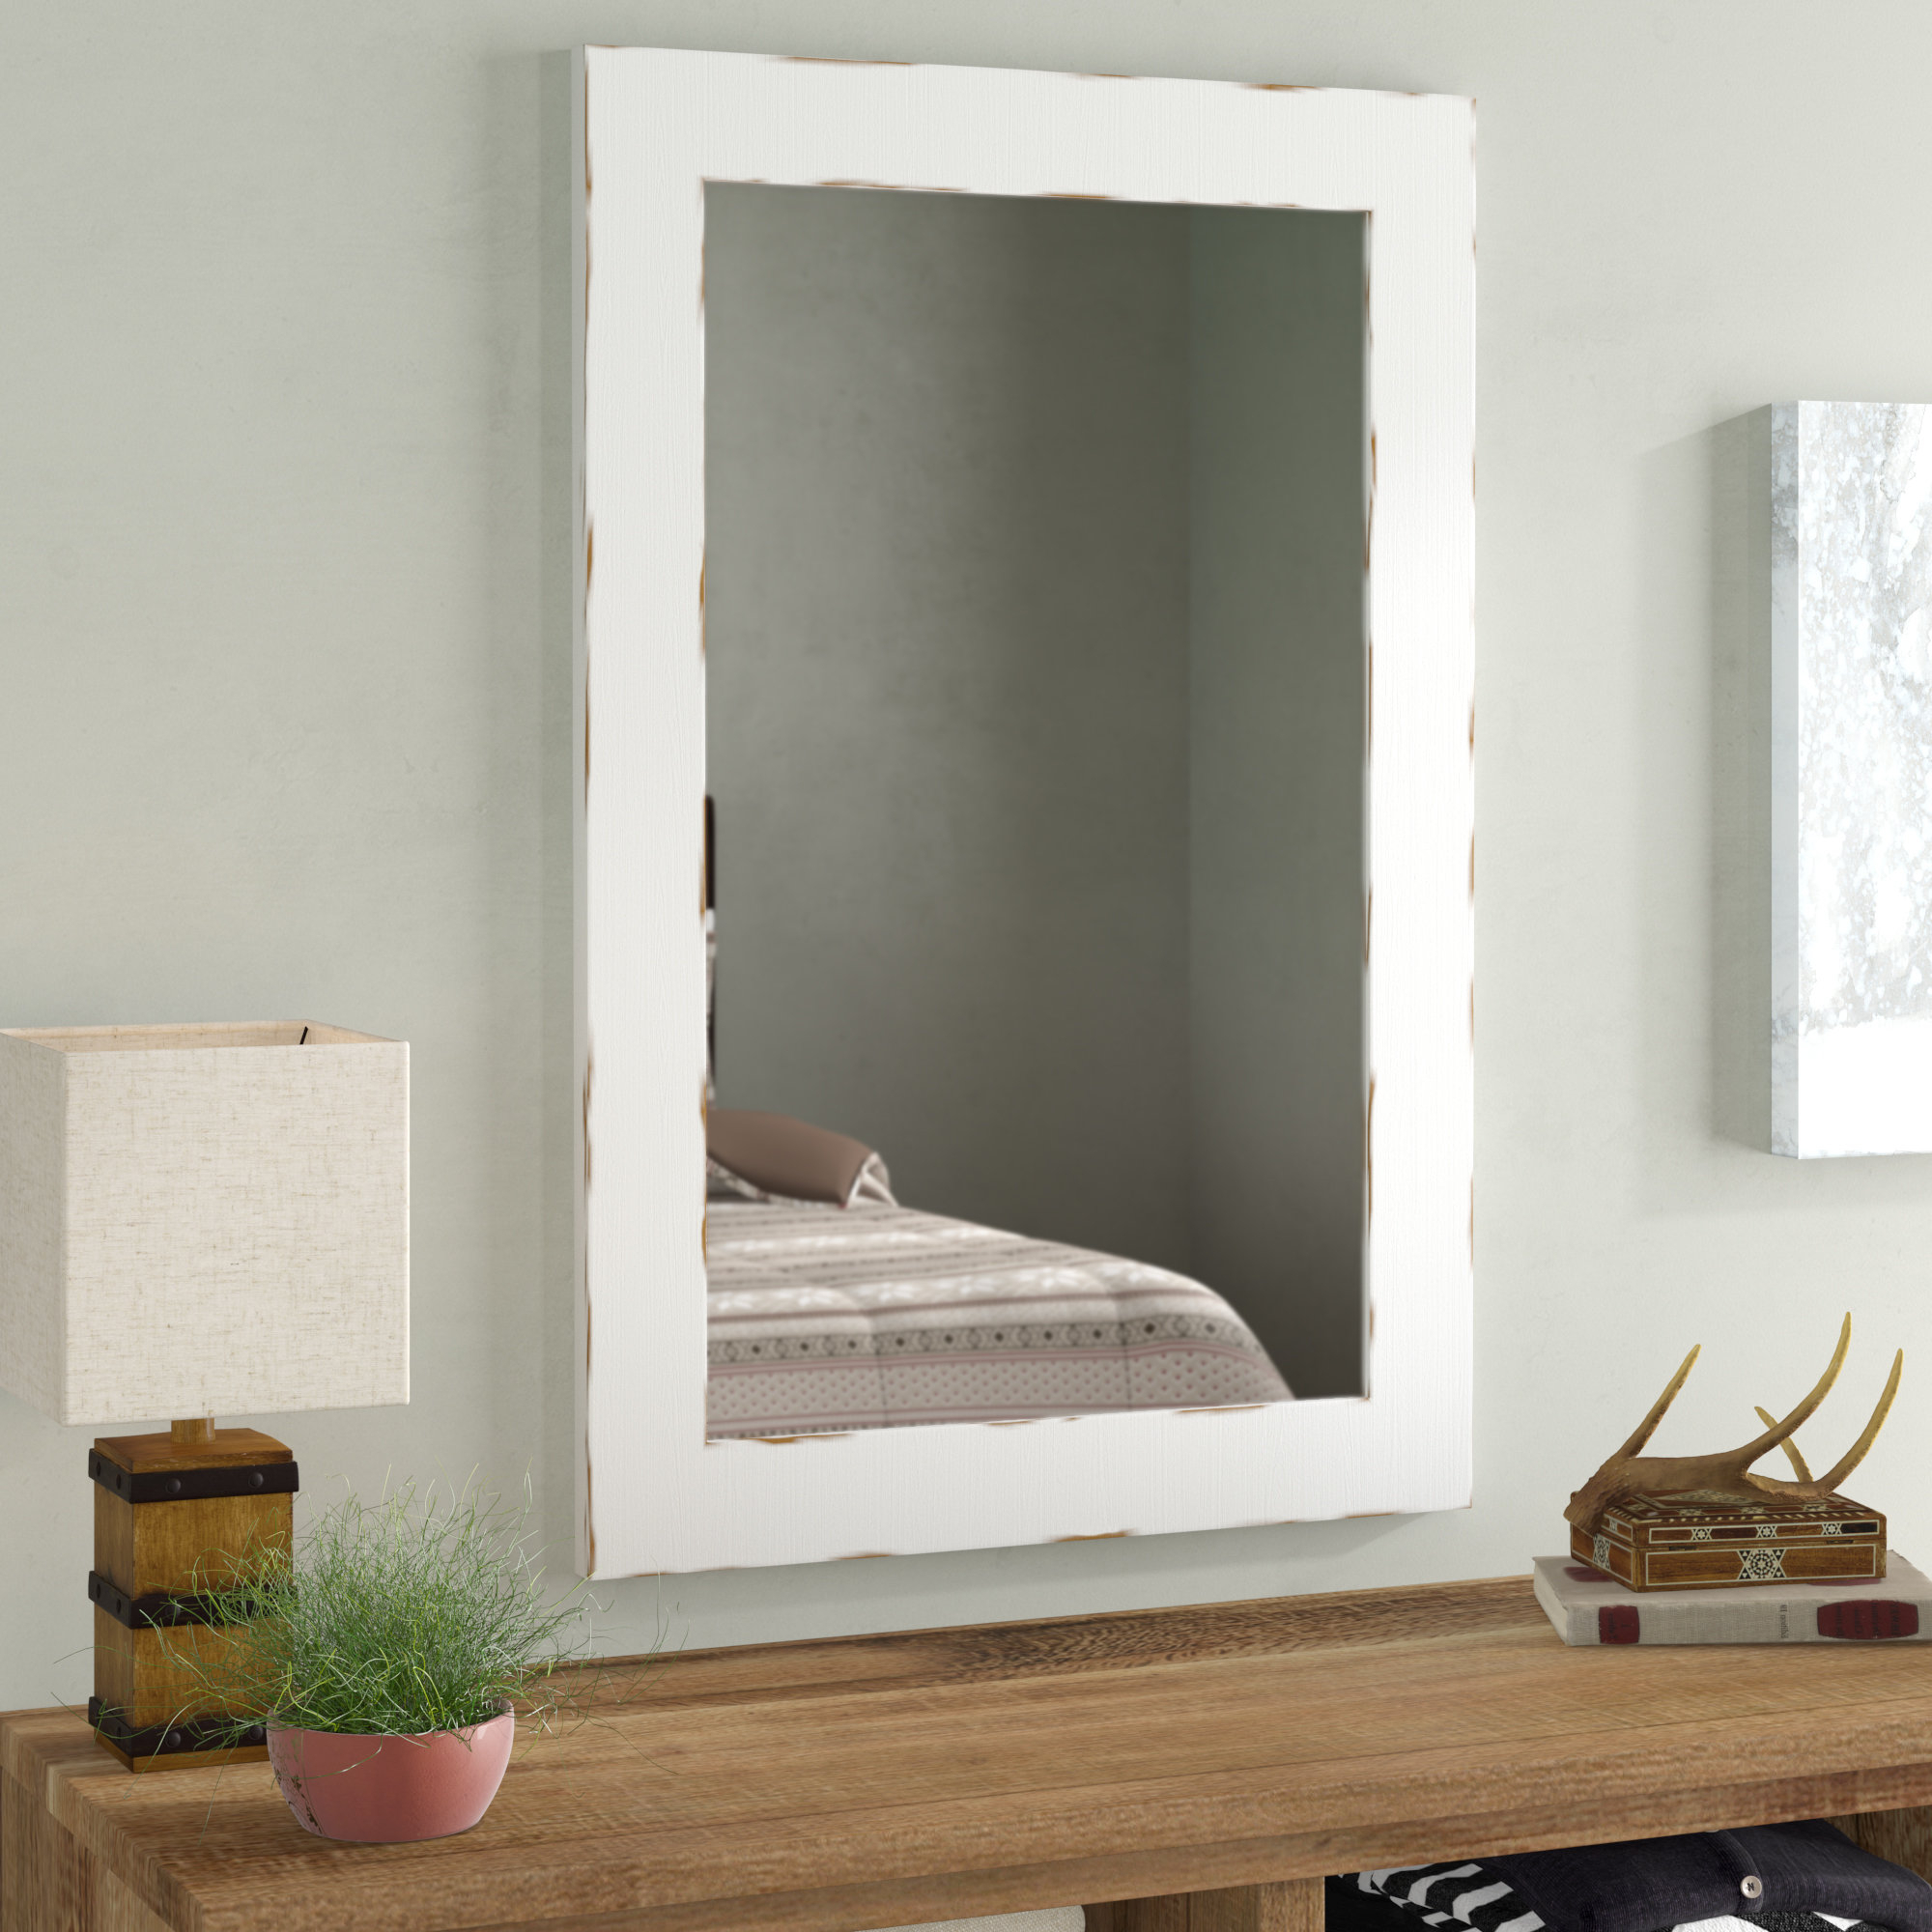 2020 Bedroom Wall Mirrors With Regard To Longwood Wall Mirror (View 1 of 20)